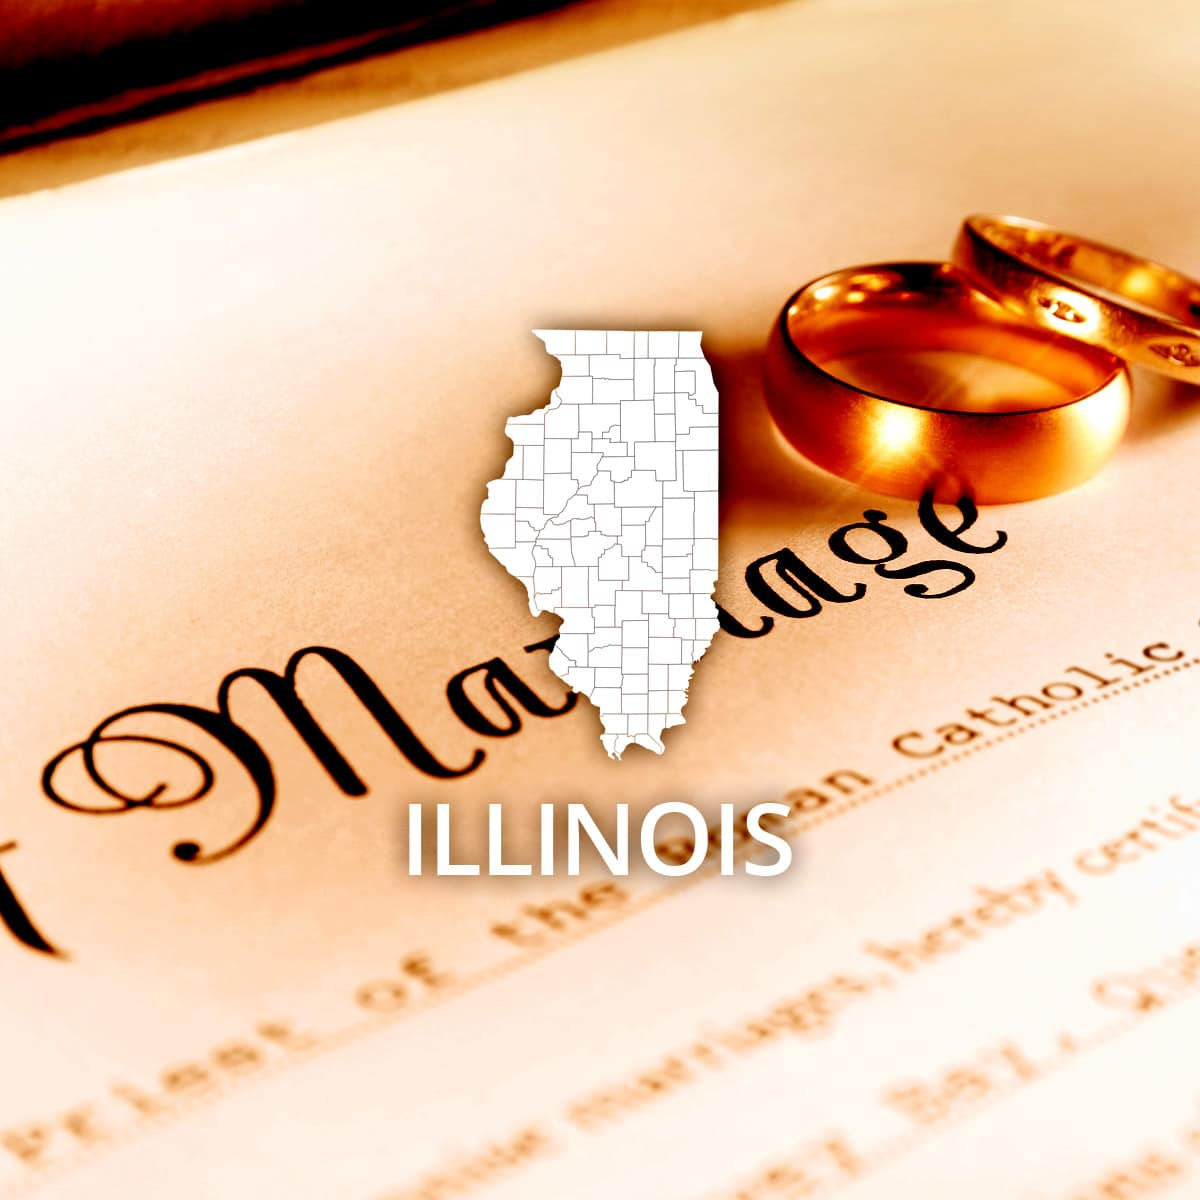 Where to Obtain an Illinois Marriage Certificate